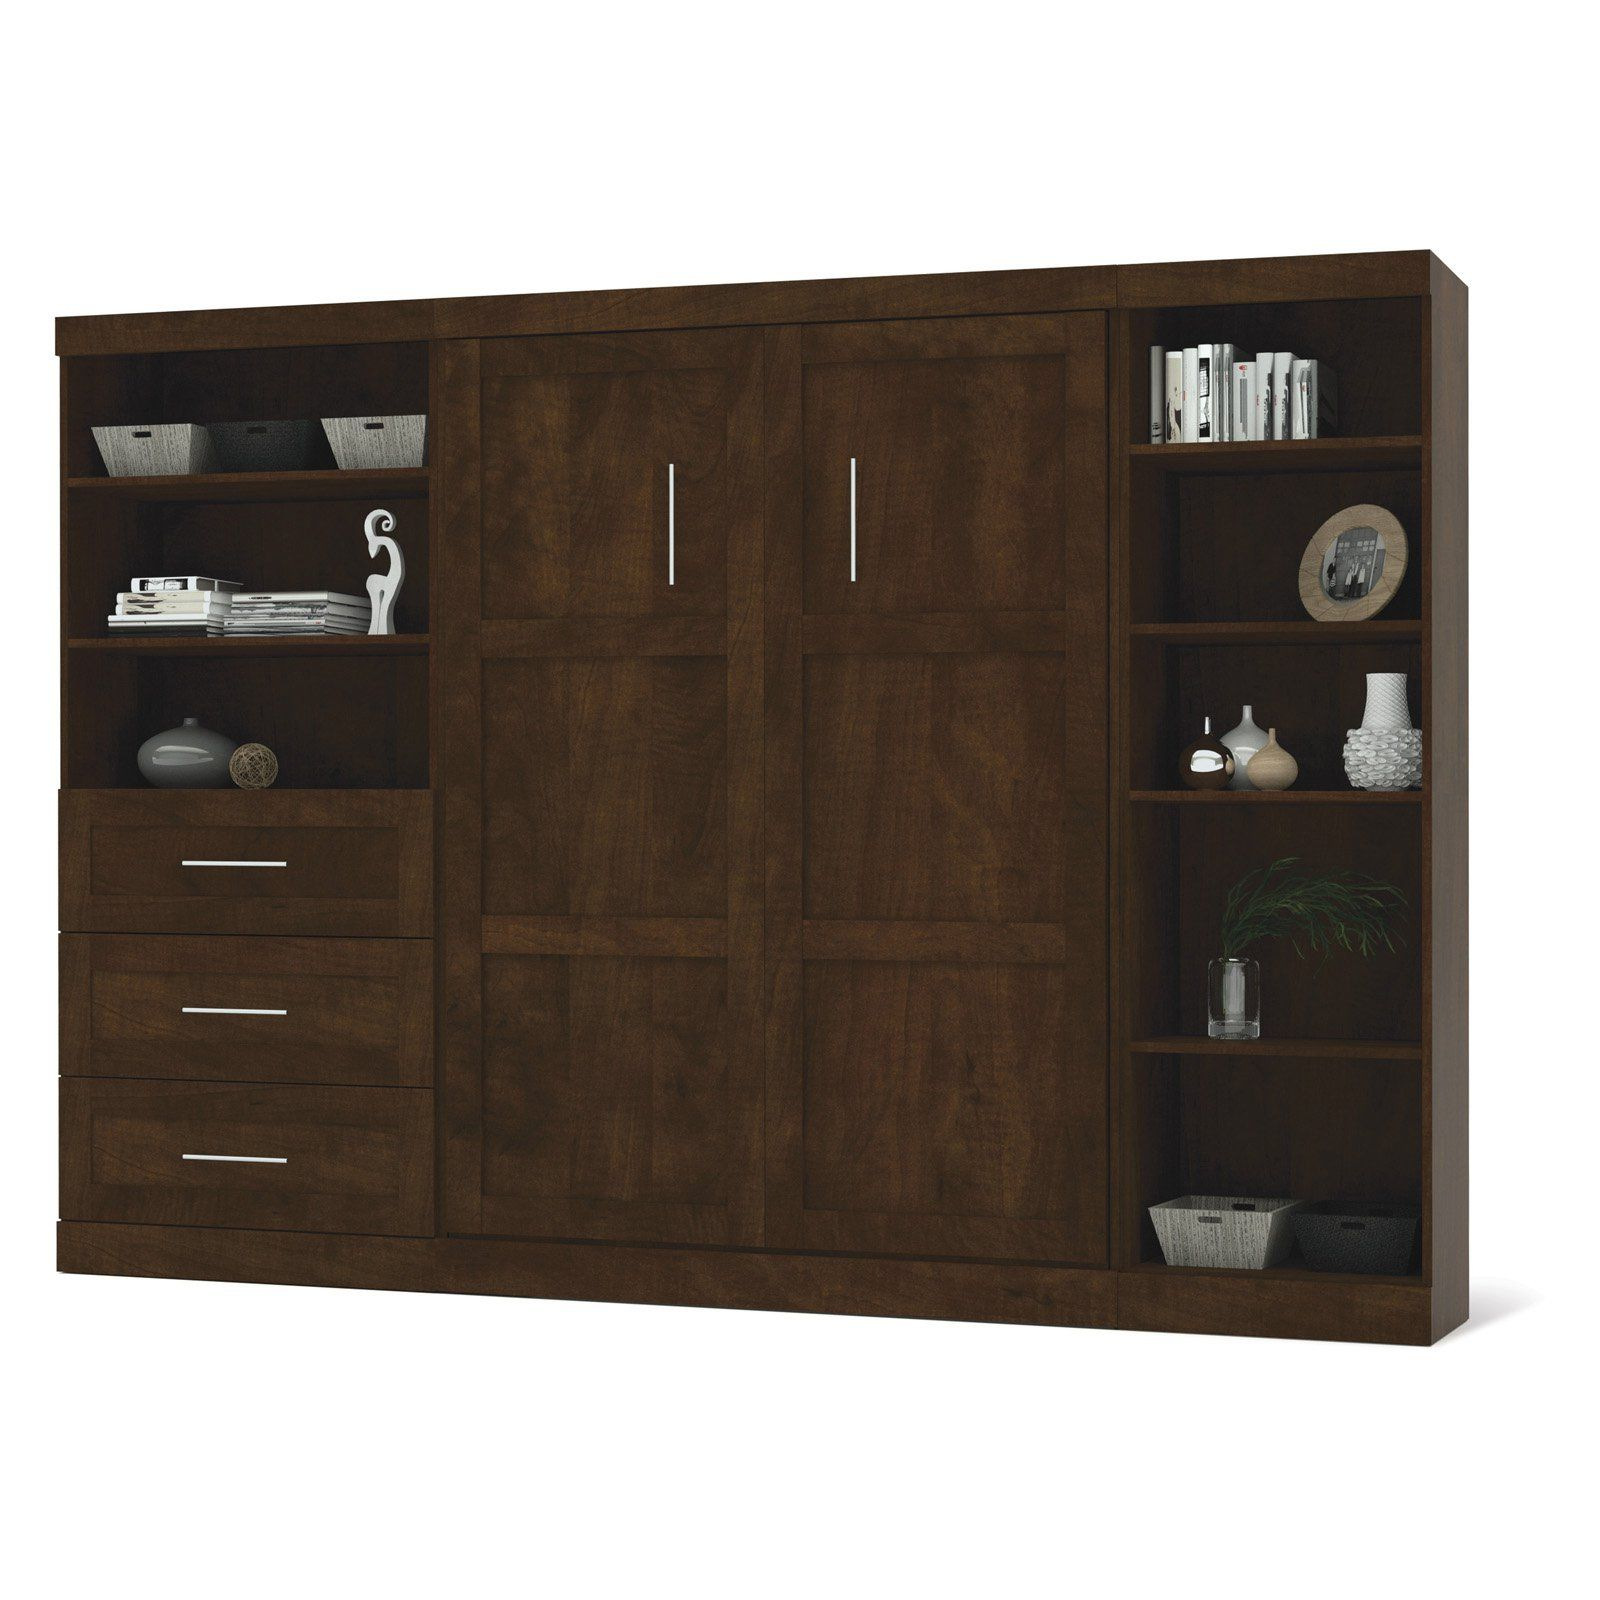 Bestar Pur Murphy Wall Bed With One 5-Shelf And One 3